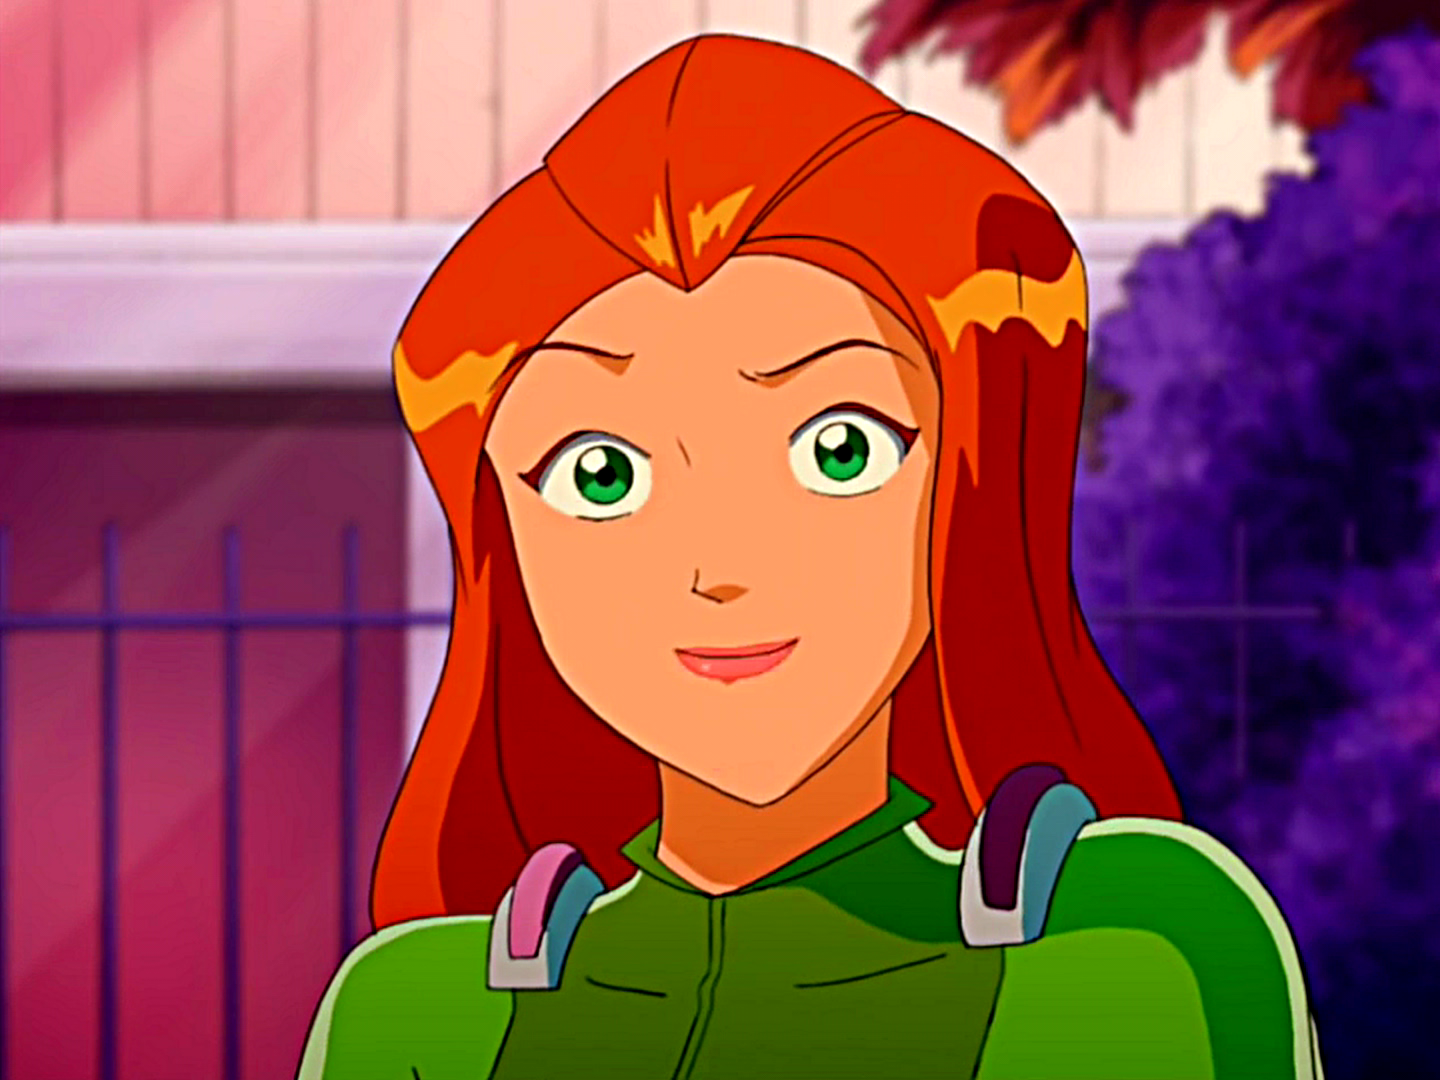 dcec510eb Samantha | Totally Spies Wiki | FANDOM powered by Wikia